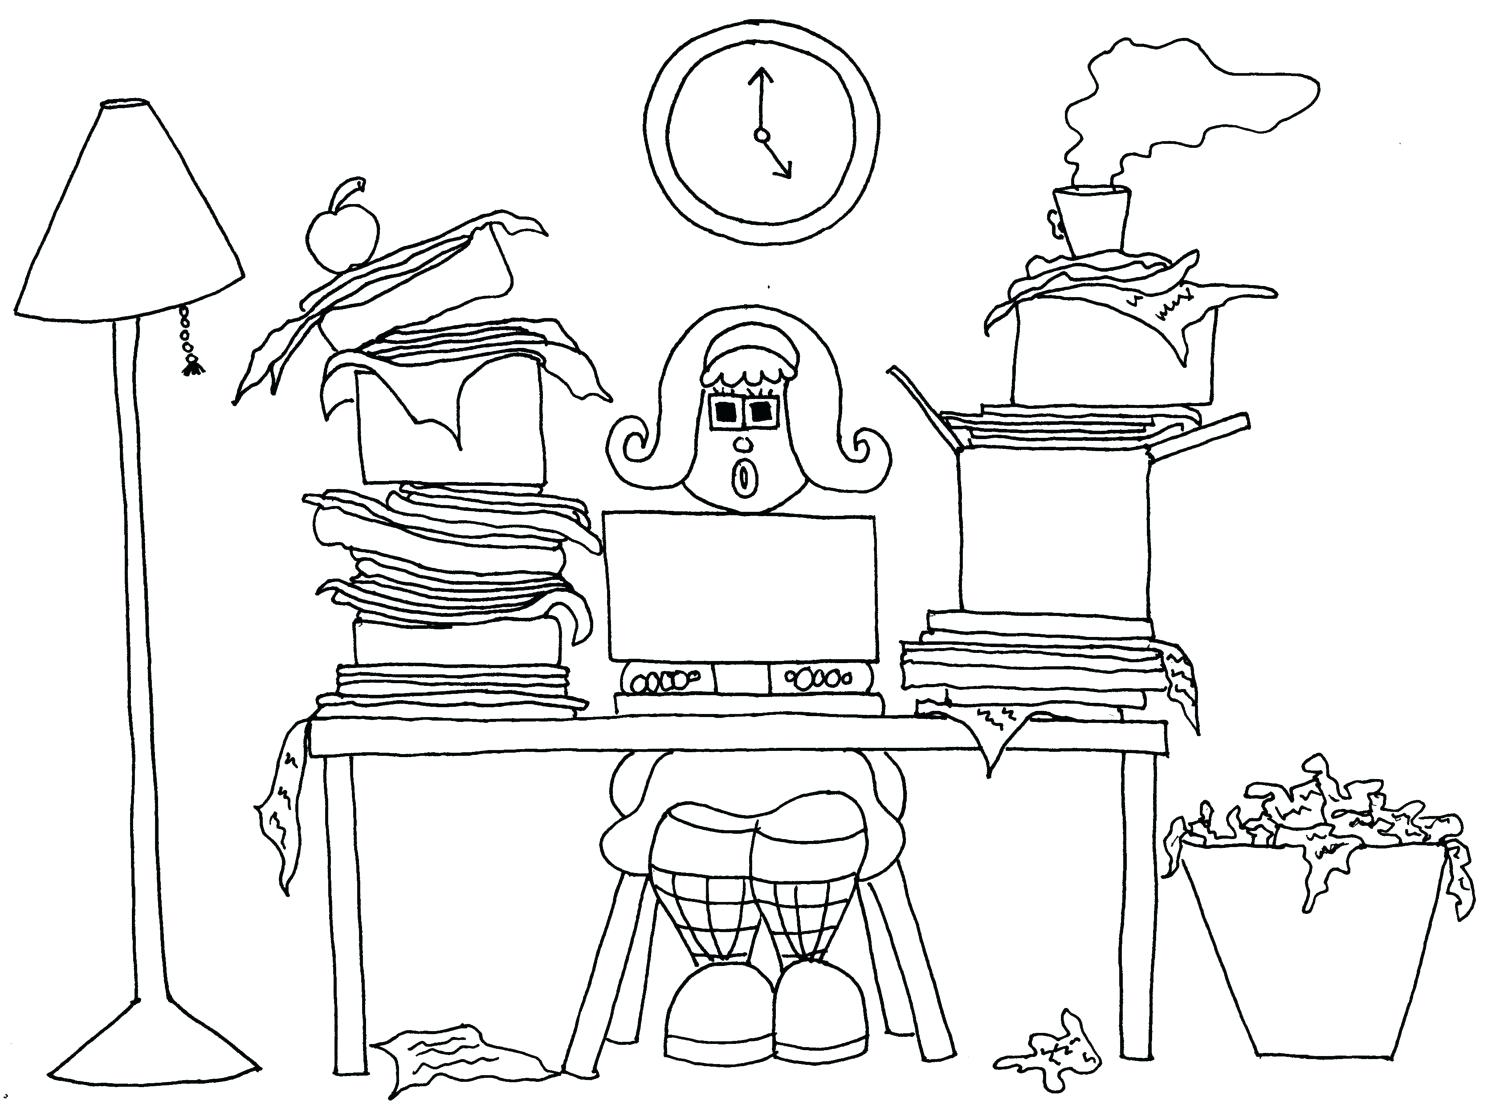 Computer Keyboard Coloring Page At Getcolorings